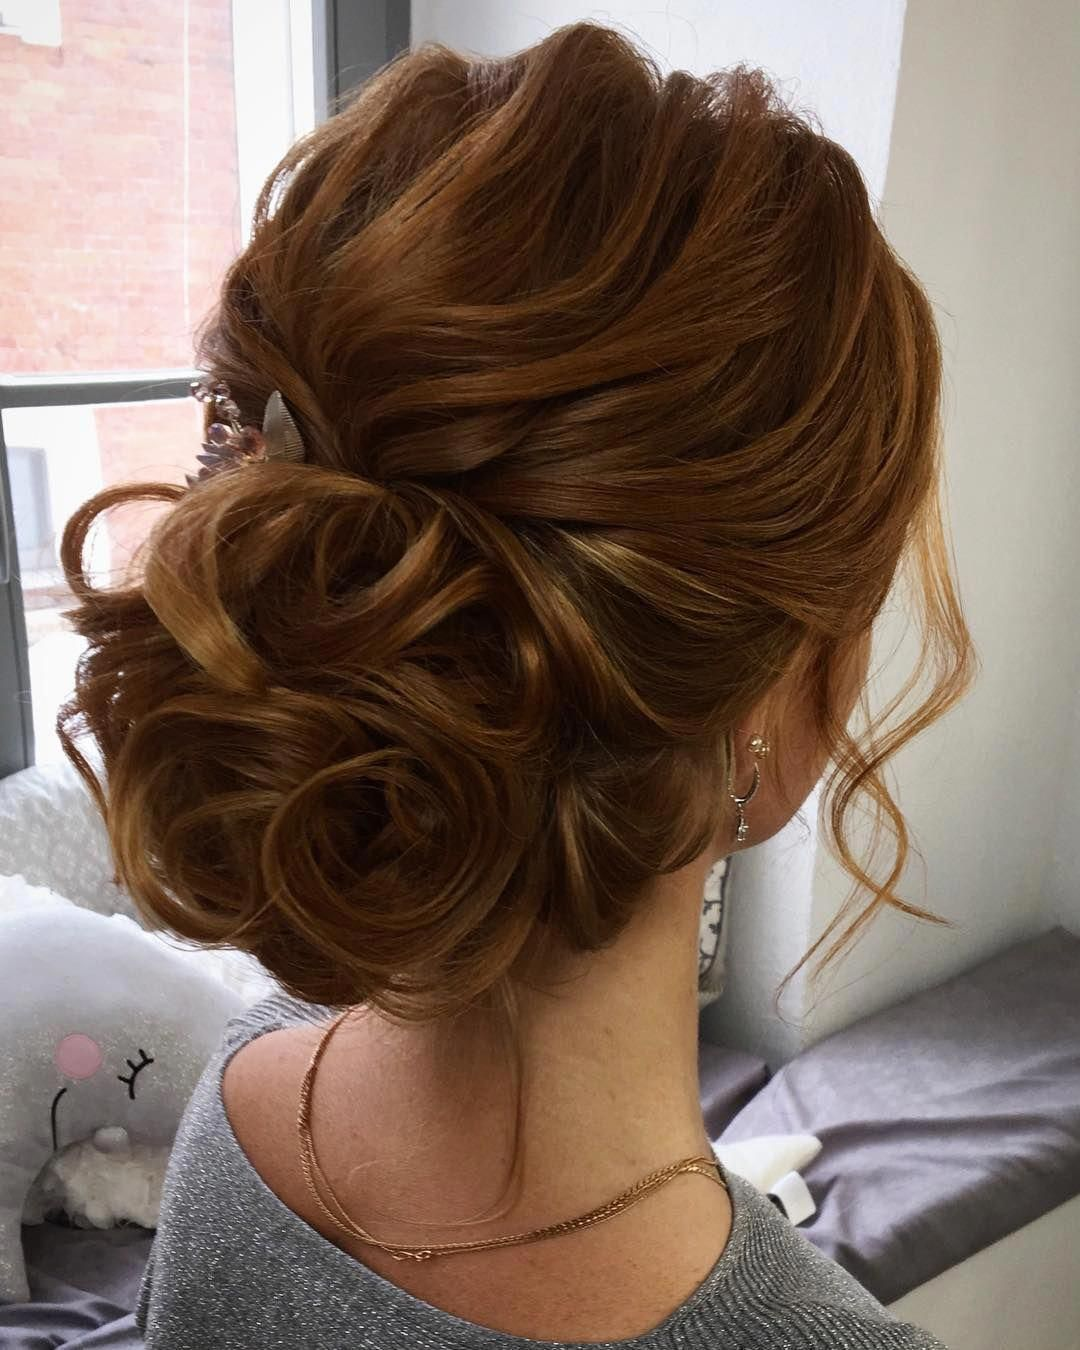 Top 20 Fabulous Updo Wedding Hairstyles: Previous Next The Best And Fabulous Hairstyles For Every